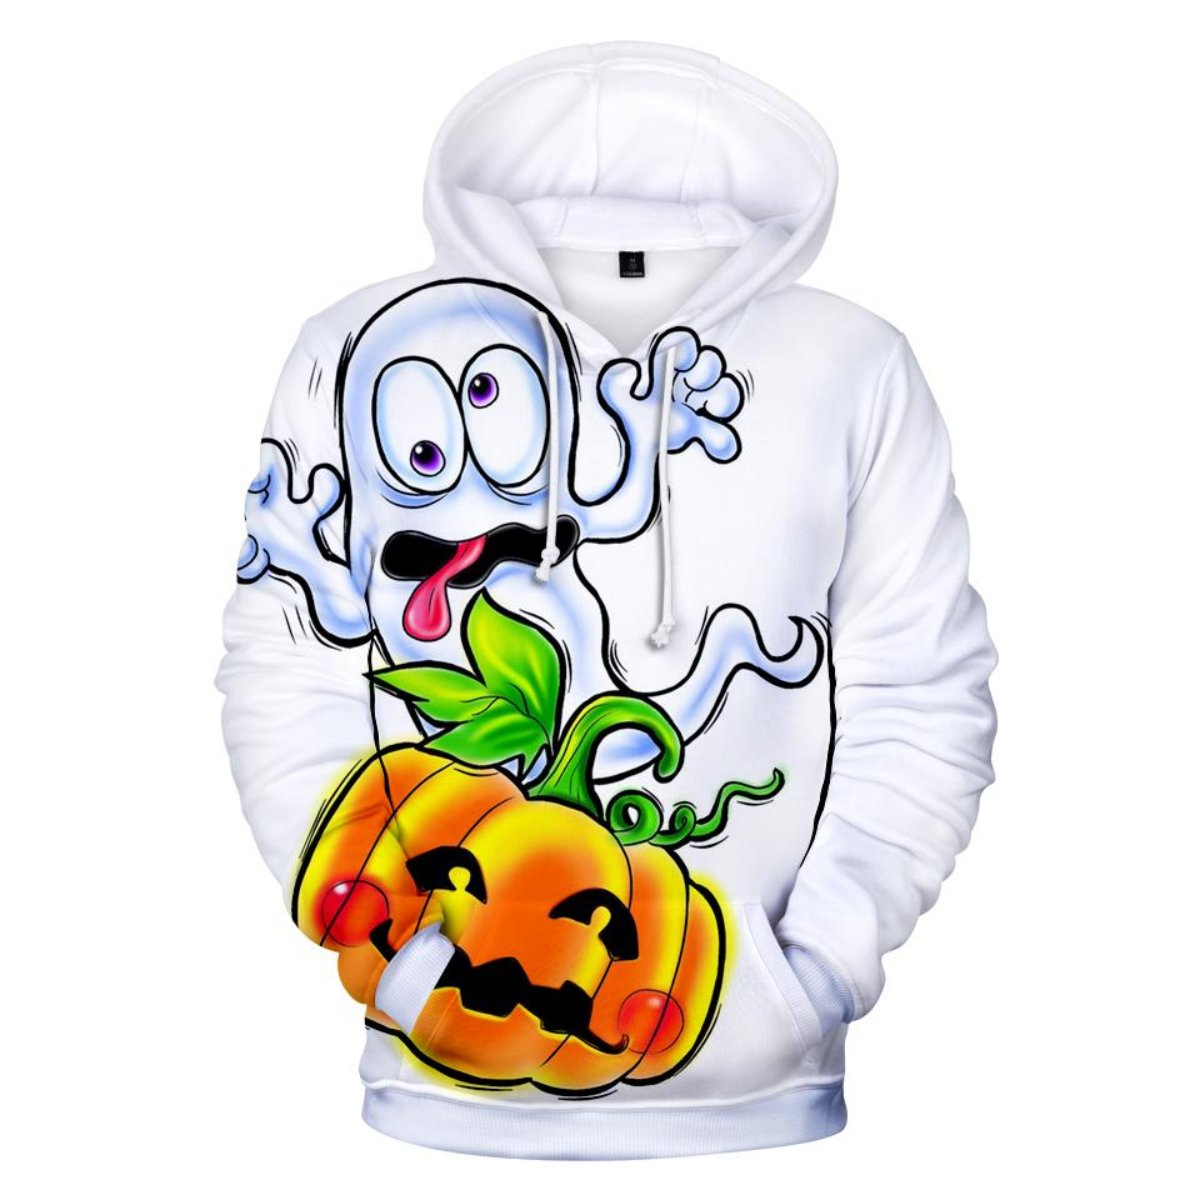 The Crazy Ghost 3D Hooded Sweatshirt